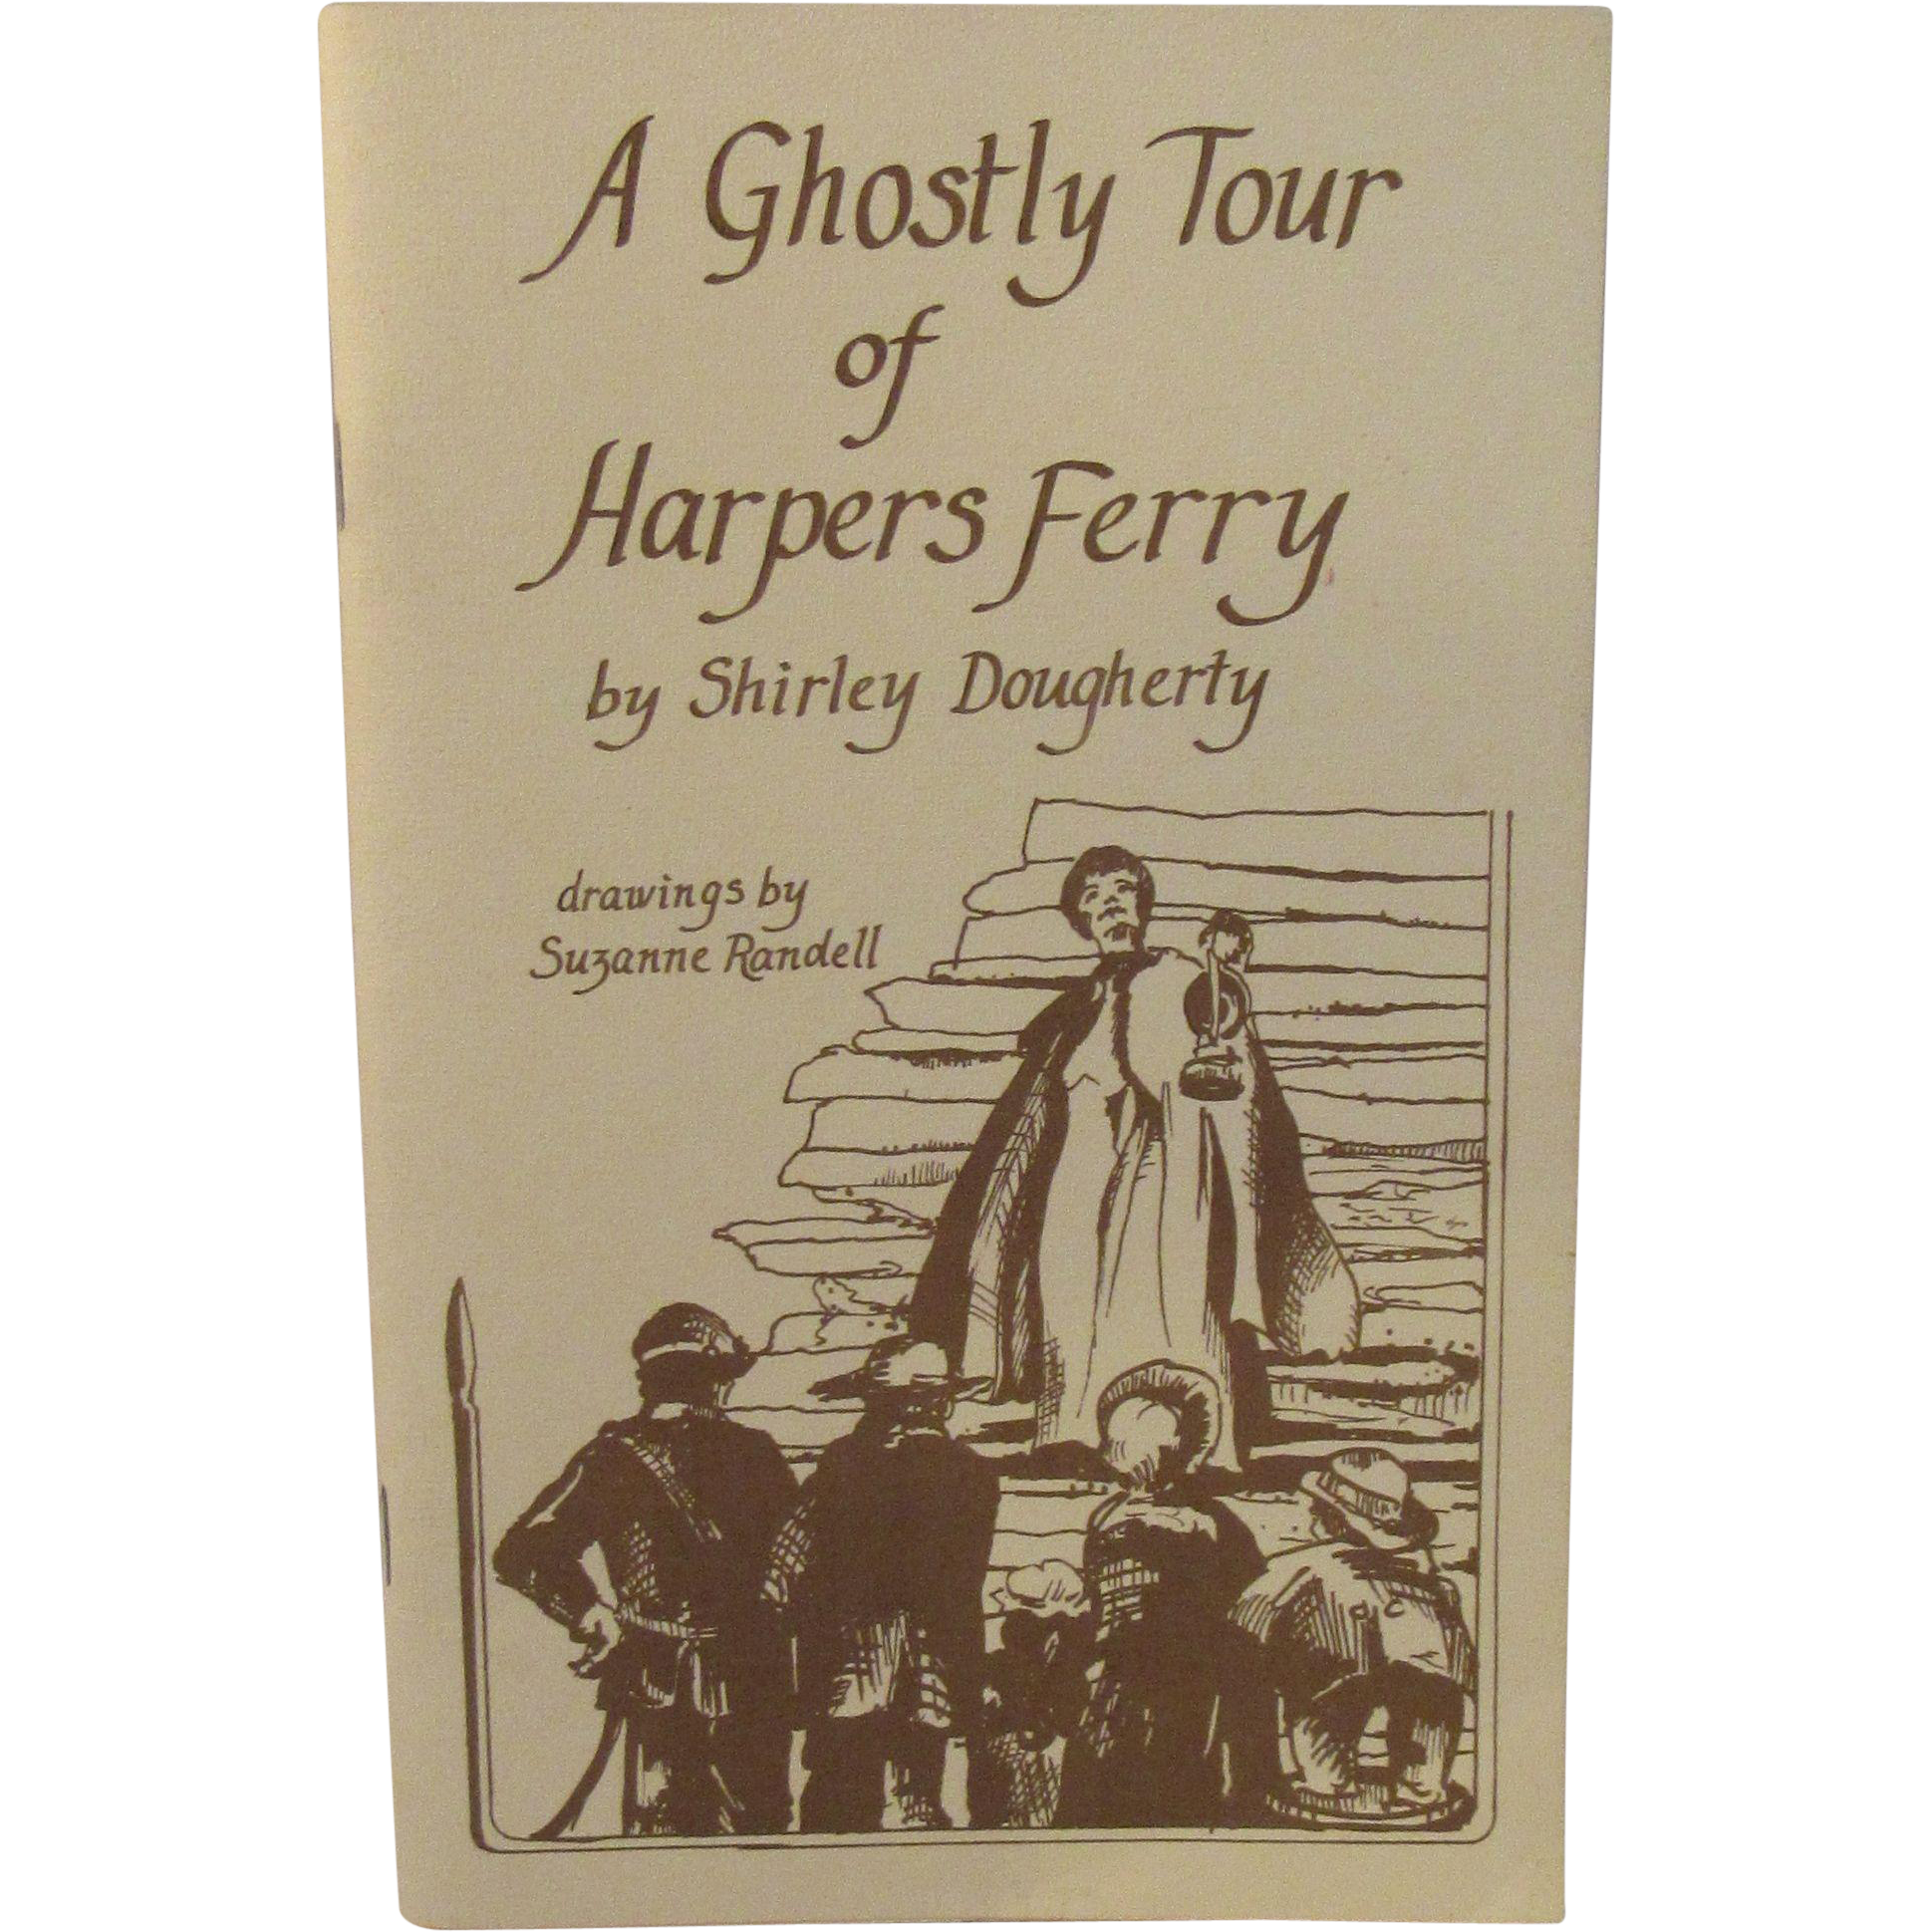 A Ghostly Tour of Harper's Ferry by Shirley Dougherty Ghost Stories